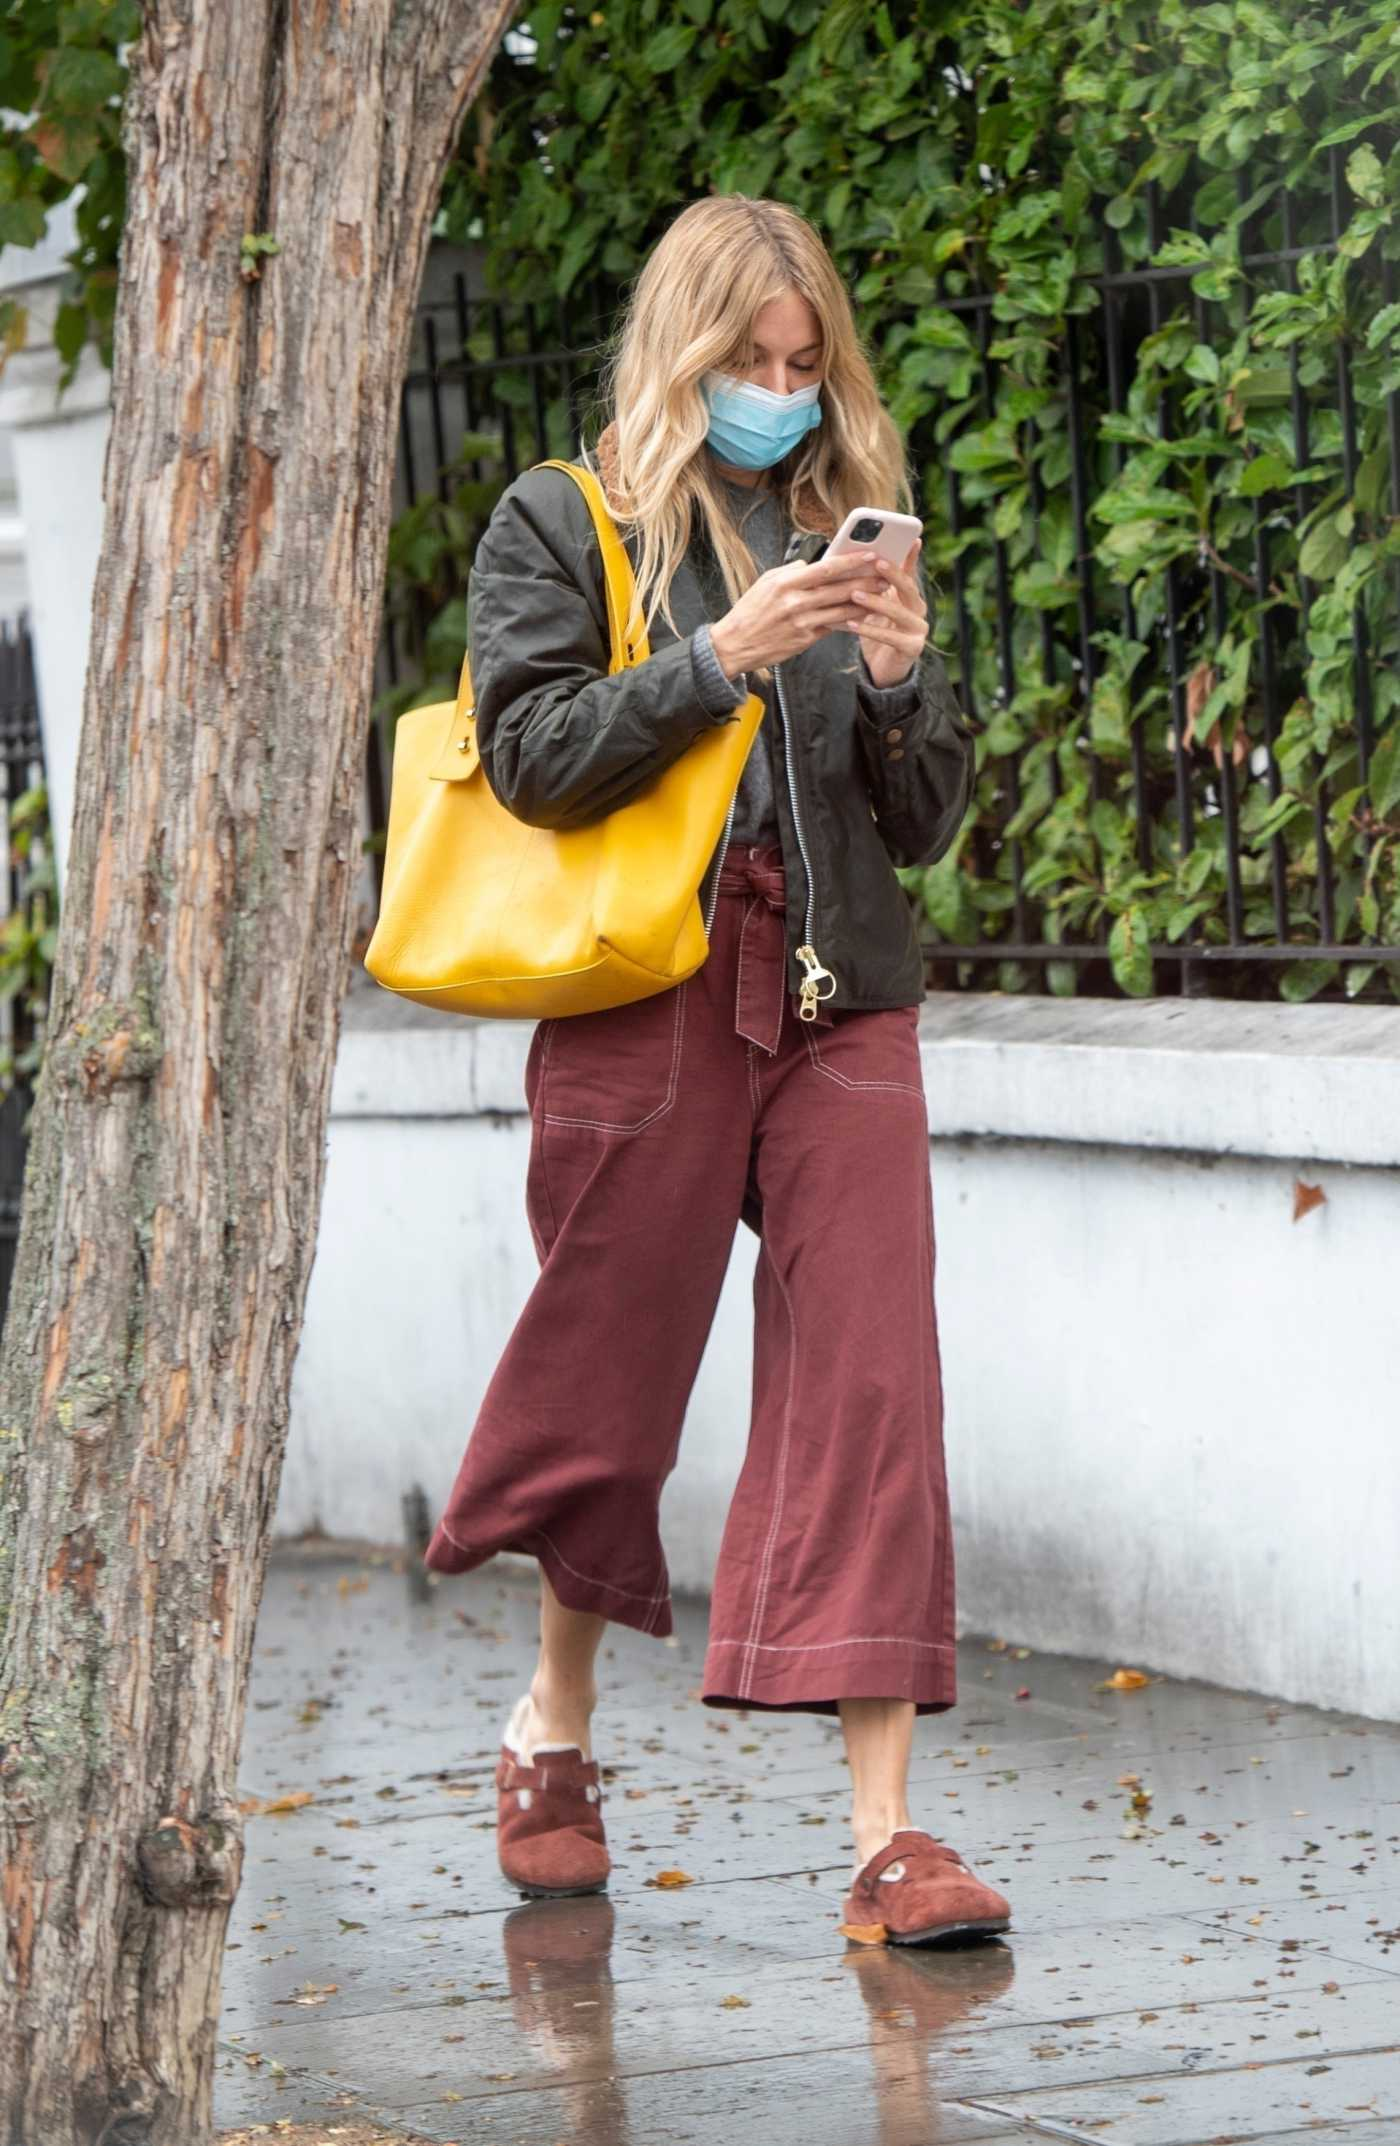 Sienna Miller in a Black Jacket Goes Shopping in Notting Hill, London 09/24/2020